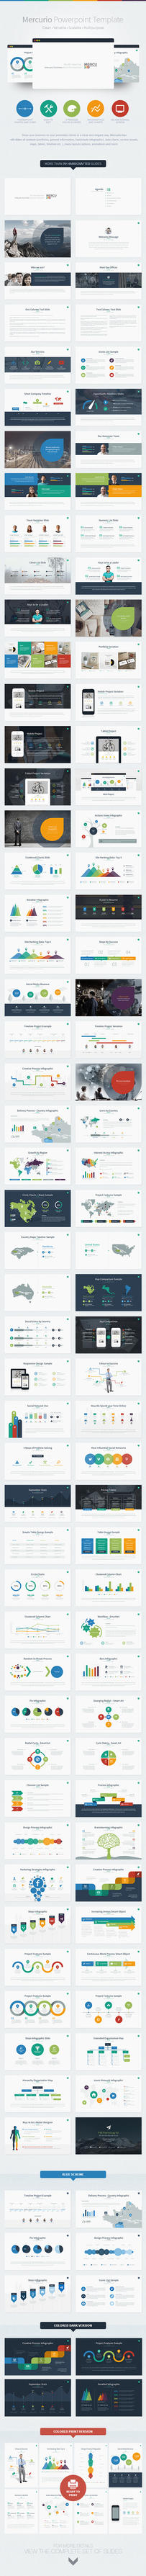 Mercurio PowerPoint Presentation Template by EAMejia